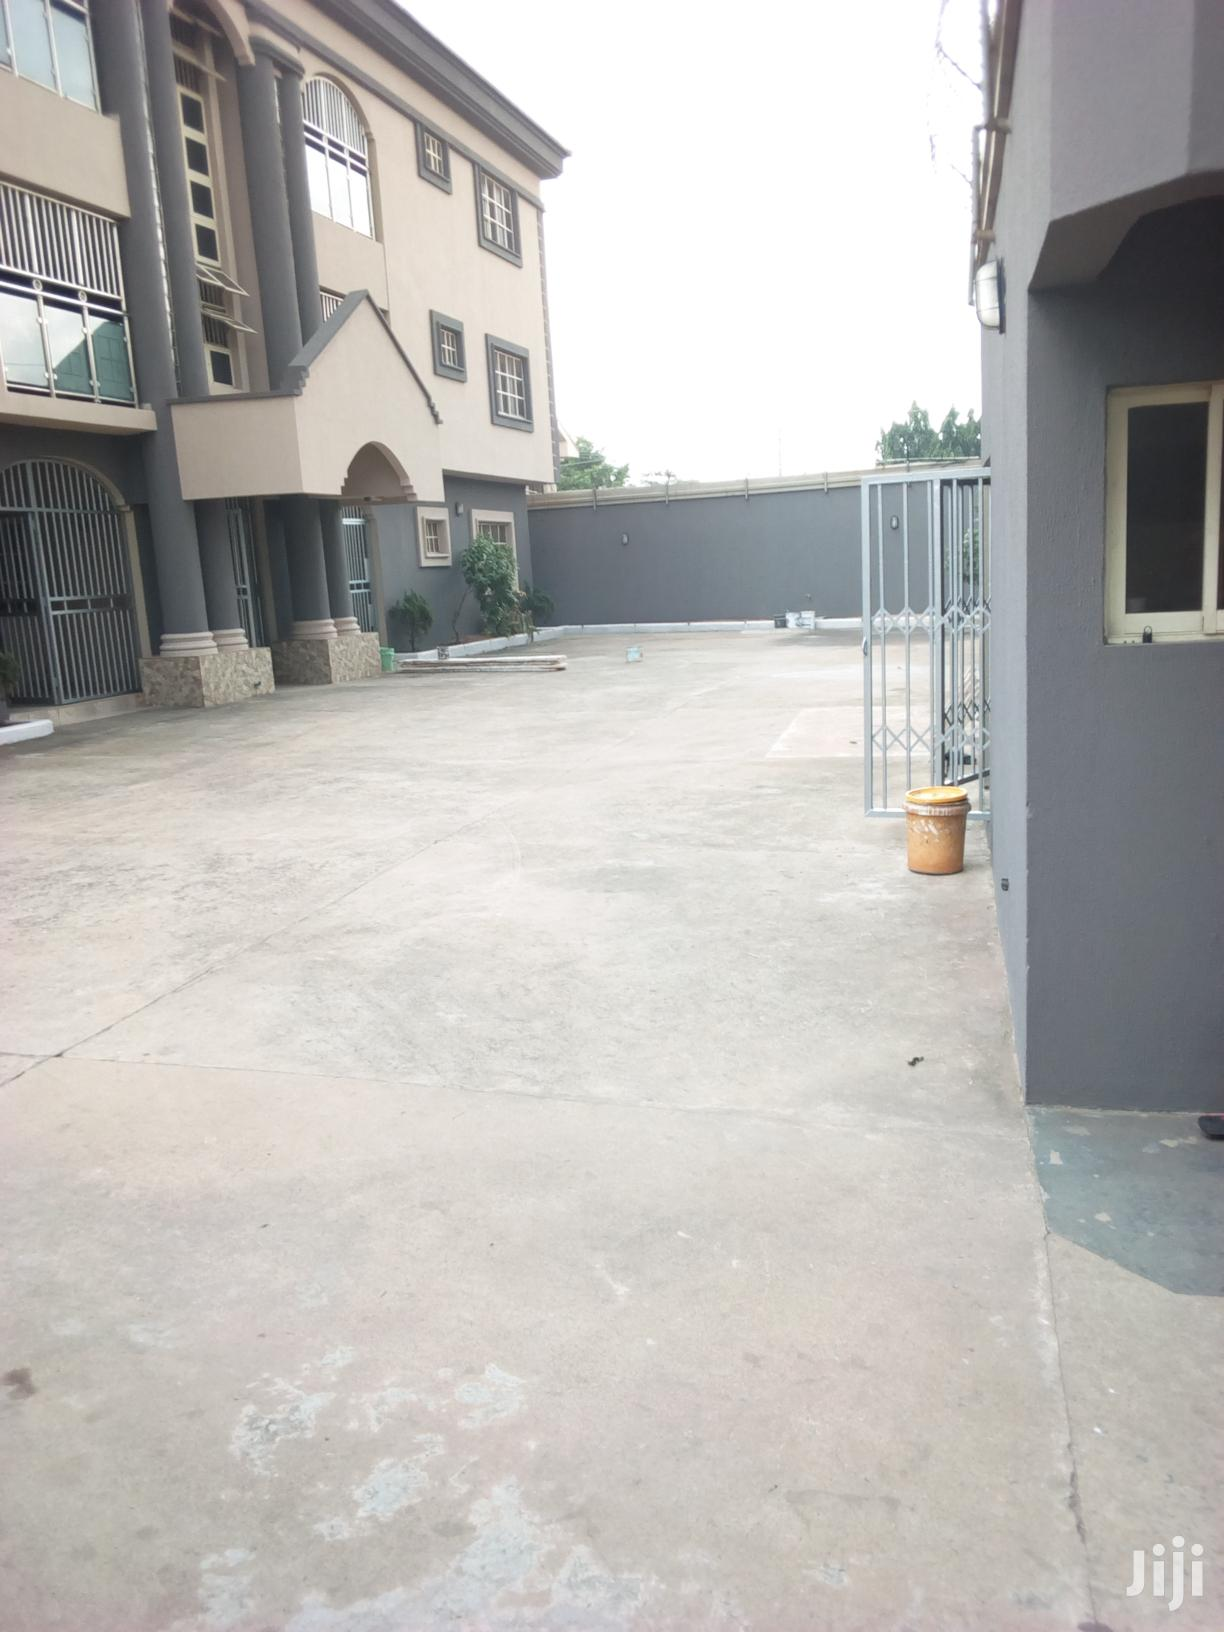 6flats To Let At Ugbor GRA Benin City | Houses & Apartments For Rent for sale in Benin City, Edo State, Nigeria